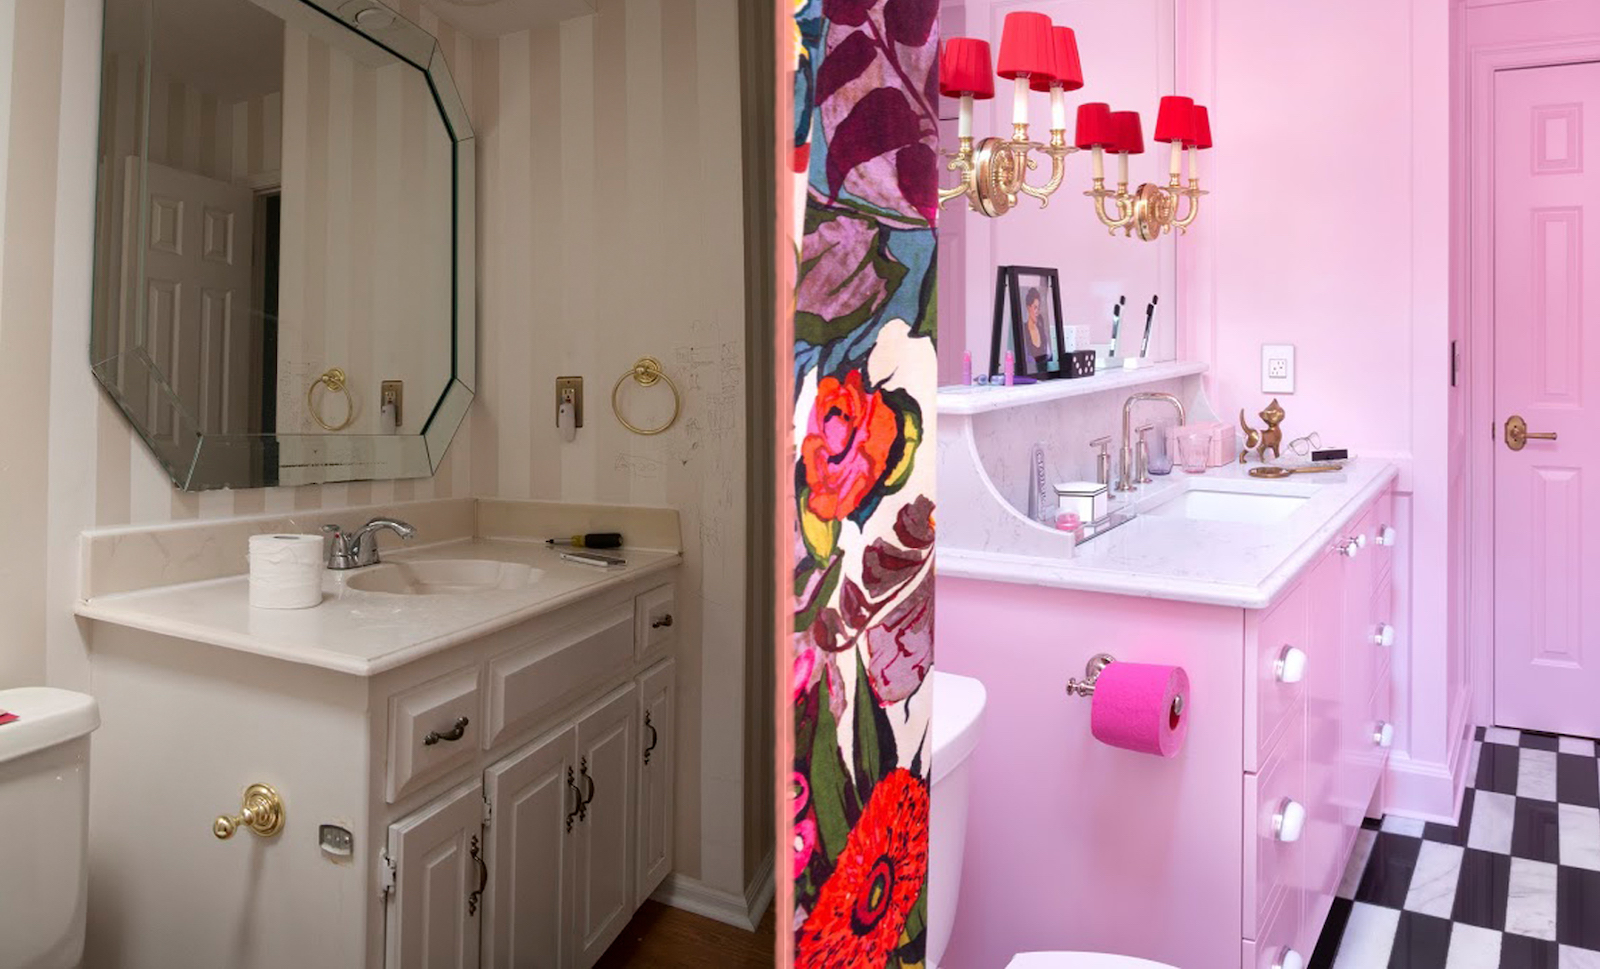 Before & After with Gwen Hefner on Design*Sponge